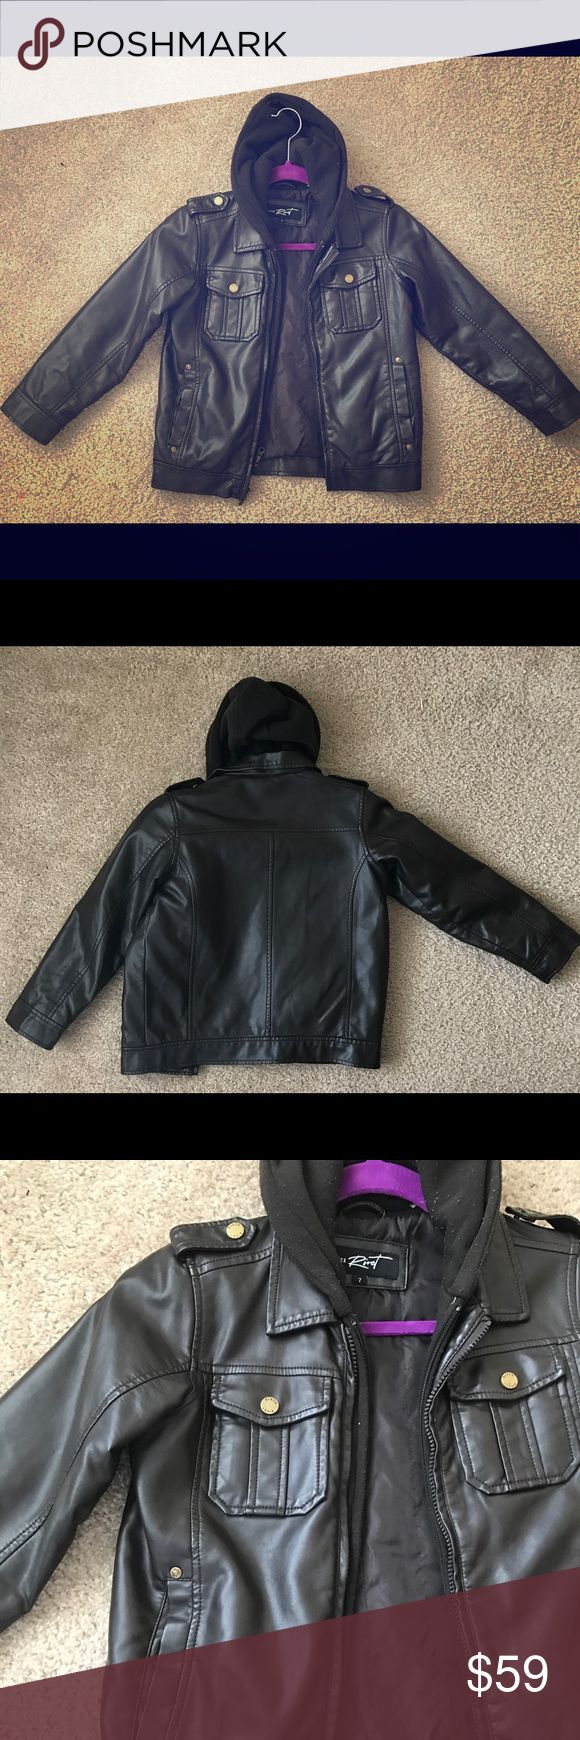 Boys Leather Jacket Good condition. Breast and side pockets. Snap shoulder. Hooded bib zips out. Lined. Very nice. Purchased at Nordstroms $120 Black Rivet Jackets & Coats